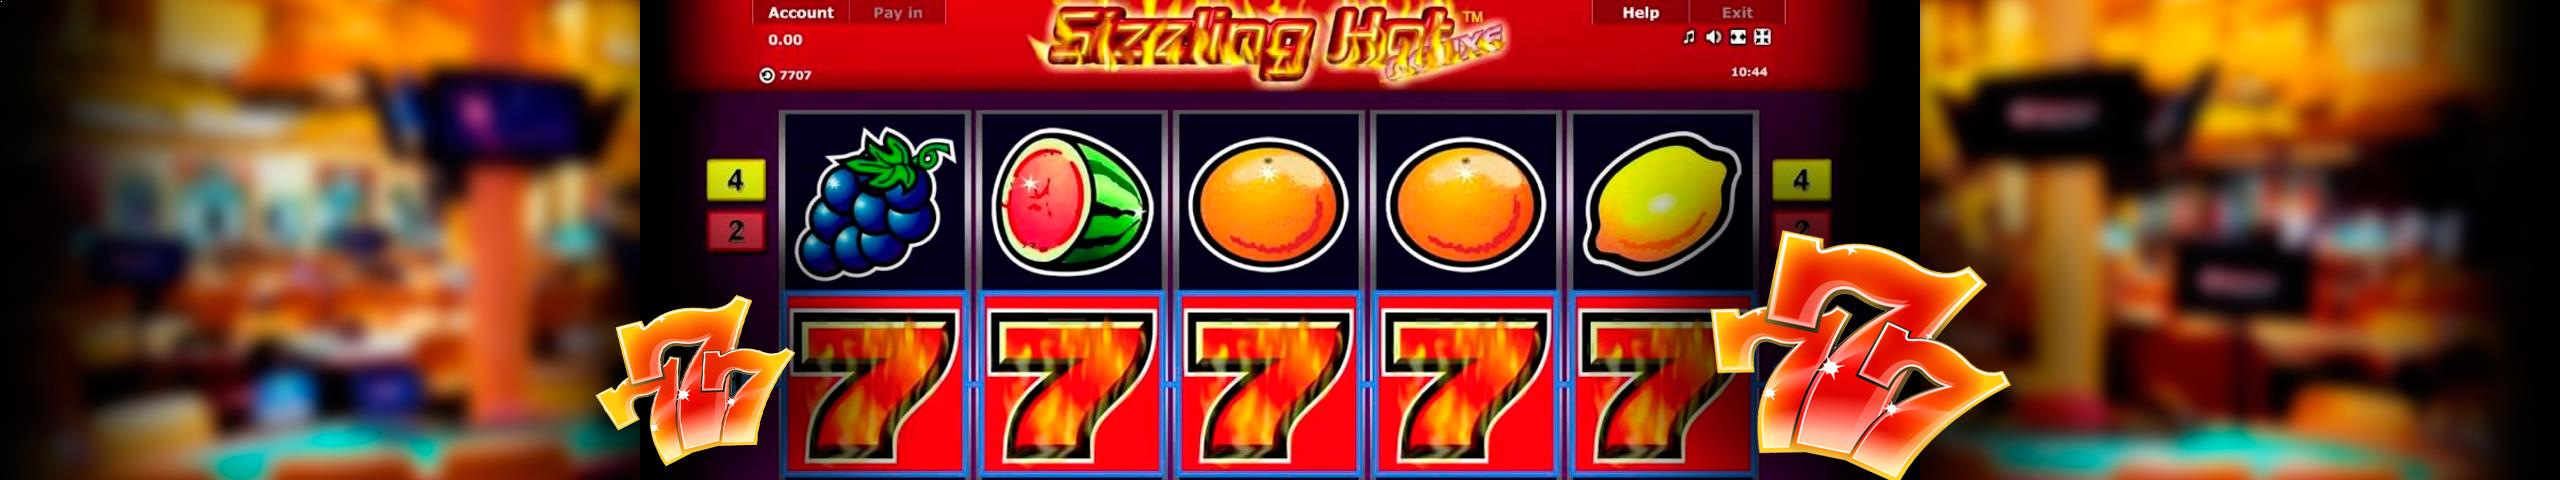 Sizzling Hot Deluxe multabafta novomatic jocuri slot slider